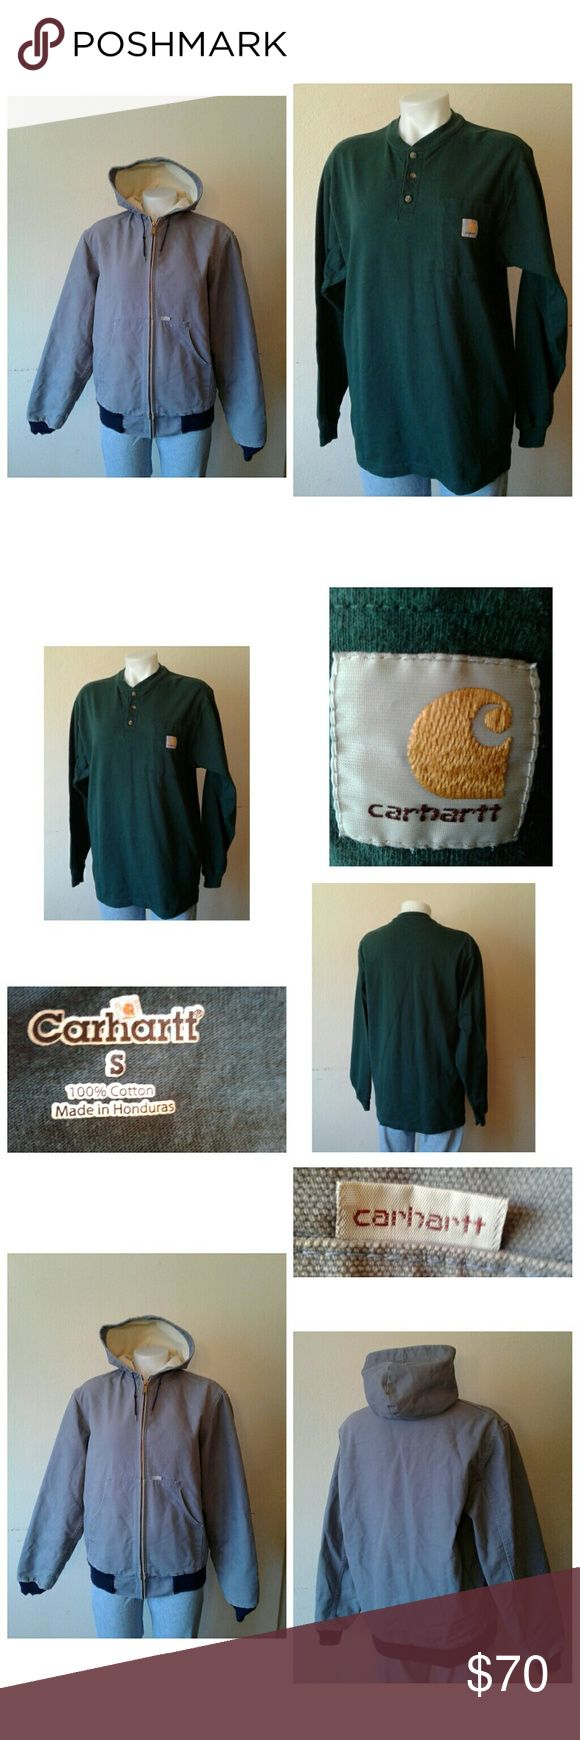 "CarharttWork shirt &  hooded jacket men's med & sm Men's Carhartt work shirt & jacket   Pre Owned Good Condition   100 % Cotton  Pine green work shirt Sm  Length 30"" Sleeves 26"" Shoulder 19"" Armpit 20"" Chest 40""  Ink Blue Hooded Jacket Tag Reads Sz Med, Can Fit Sm  100% Cotton Shell  Cream 100% Polyester Lining   Length 25.5"" Sleeves 27"" Armpit 22"" Shoulder 20"" Chest 46"" Carhartt Jackets & Coats Lightweight & Shirt Jackets"